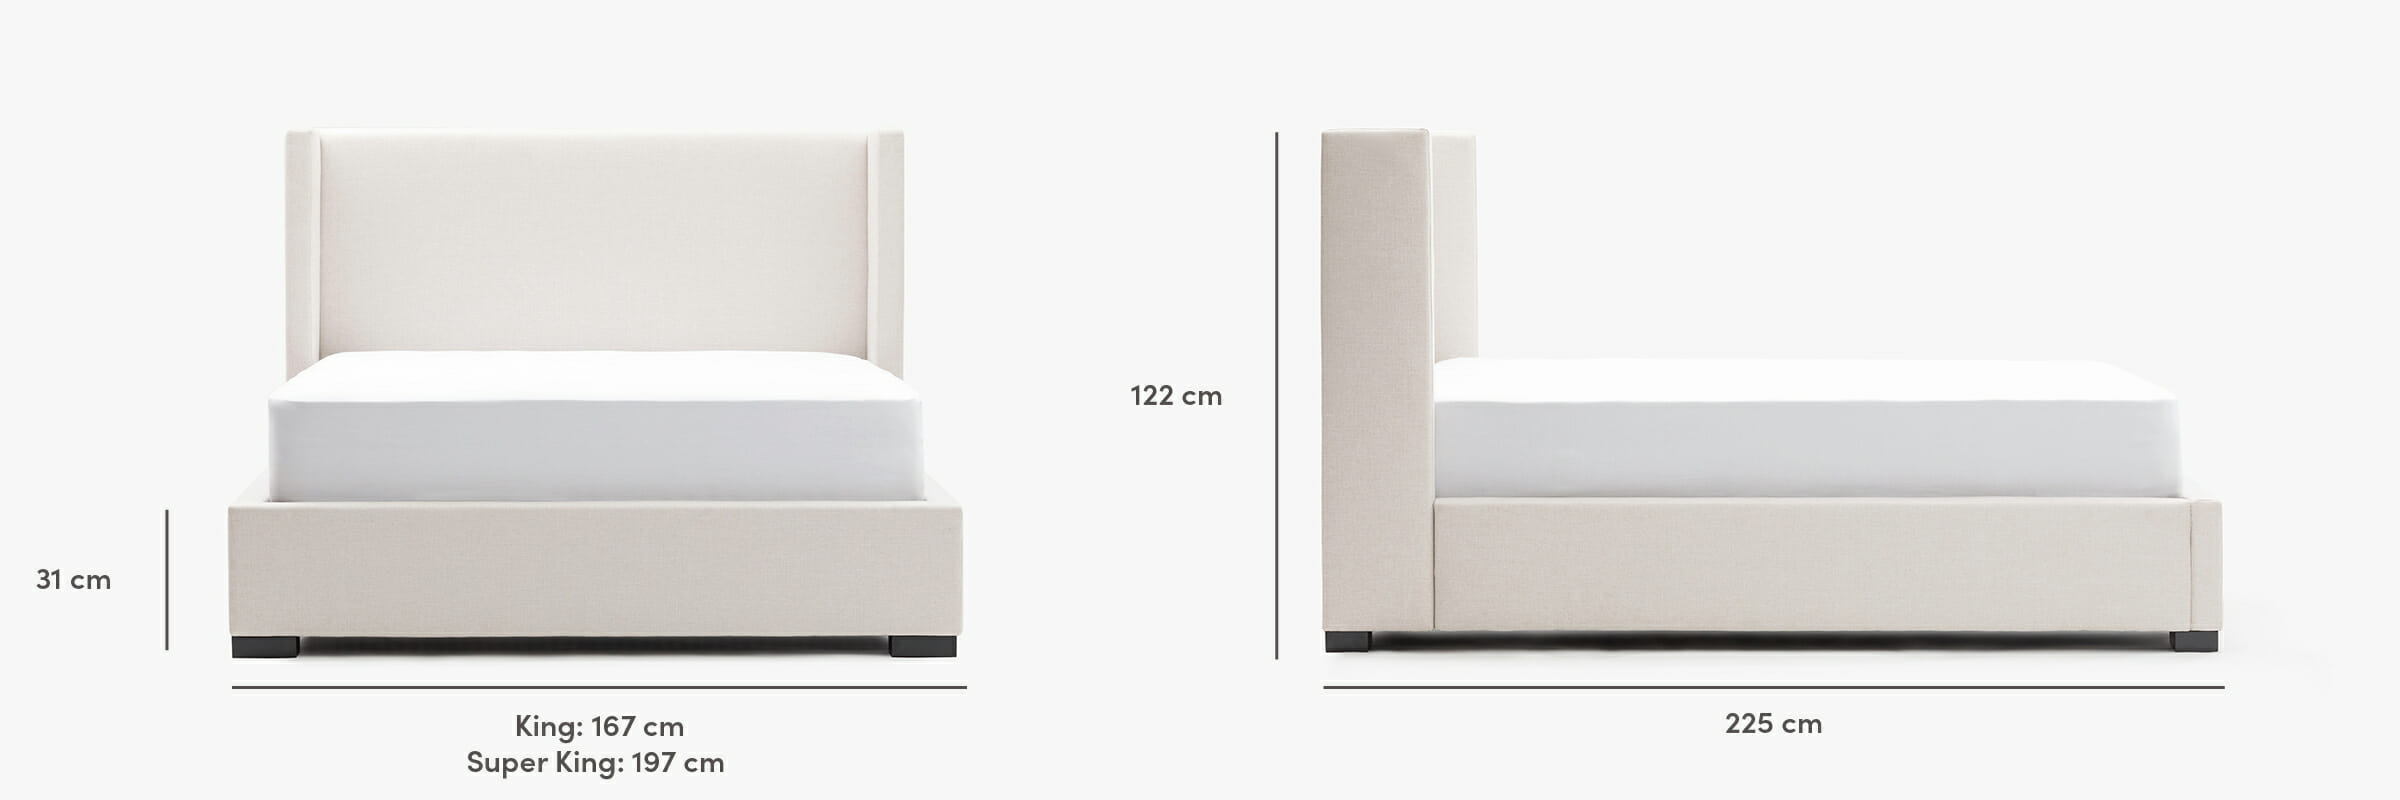 The Osaka bed dimensions